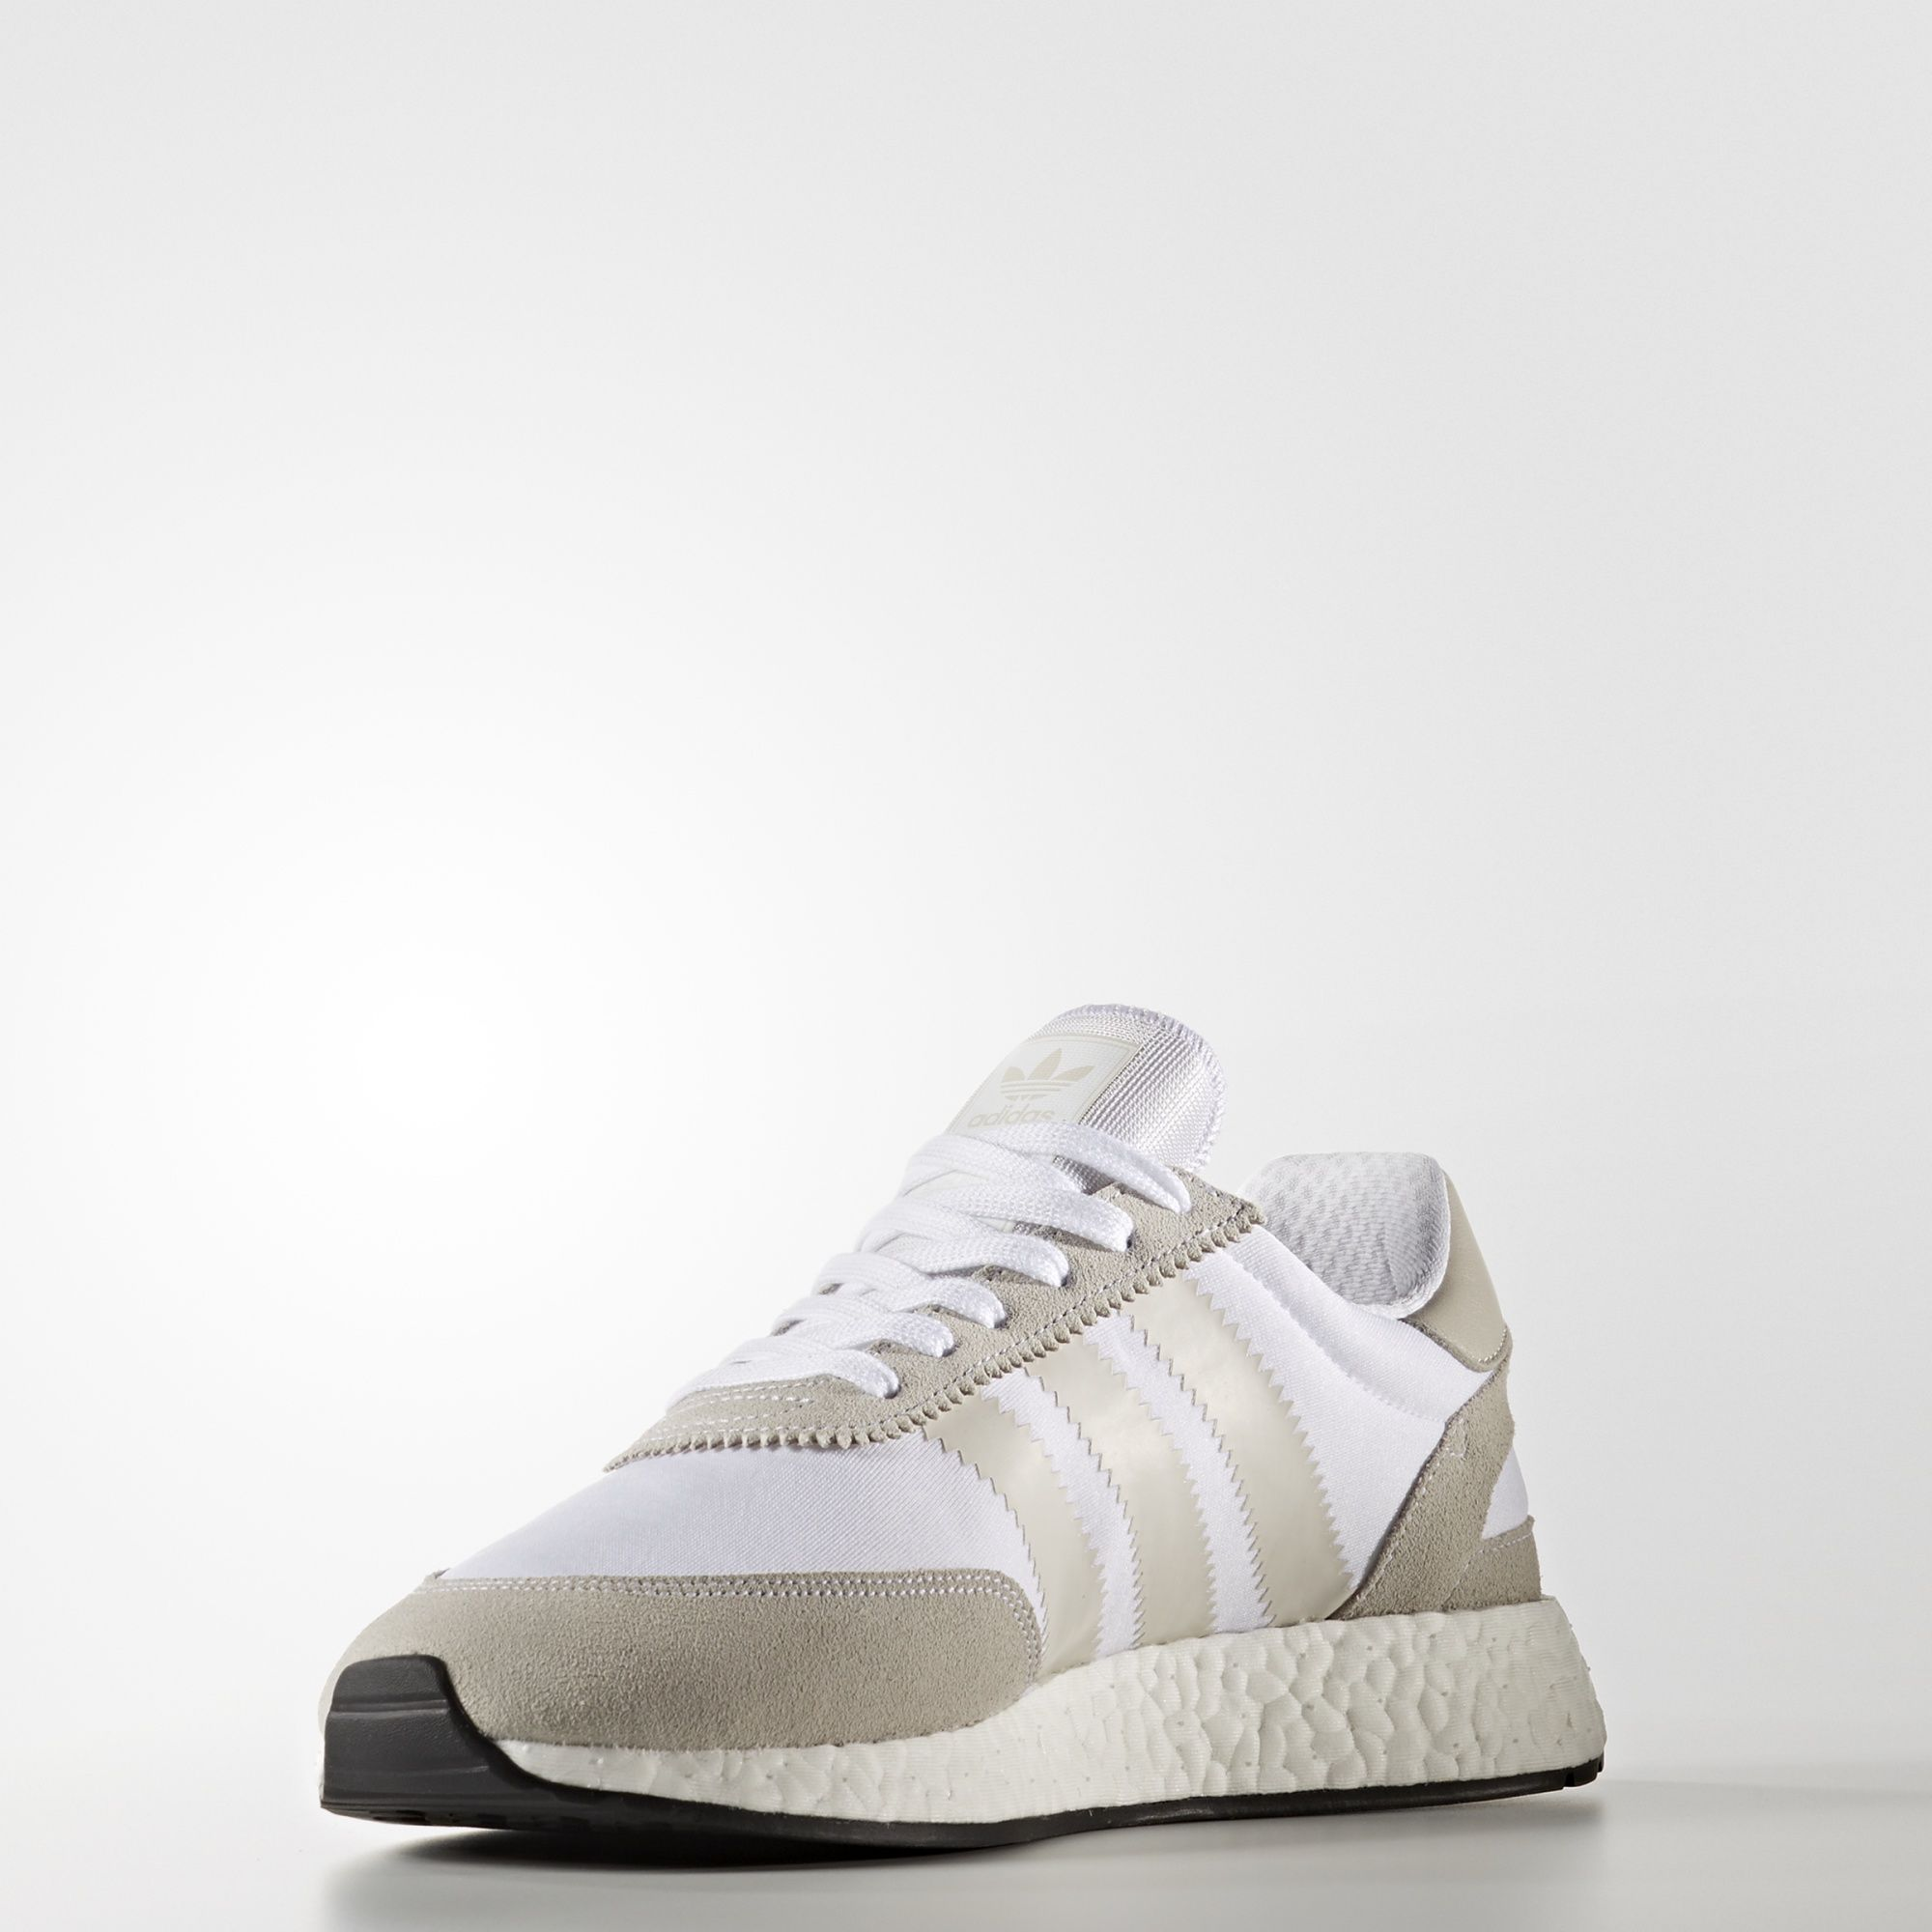 adidas Iniki Runner Pearl Grey BB2101 3